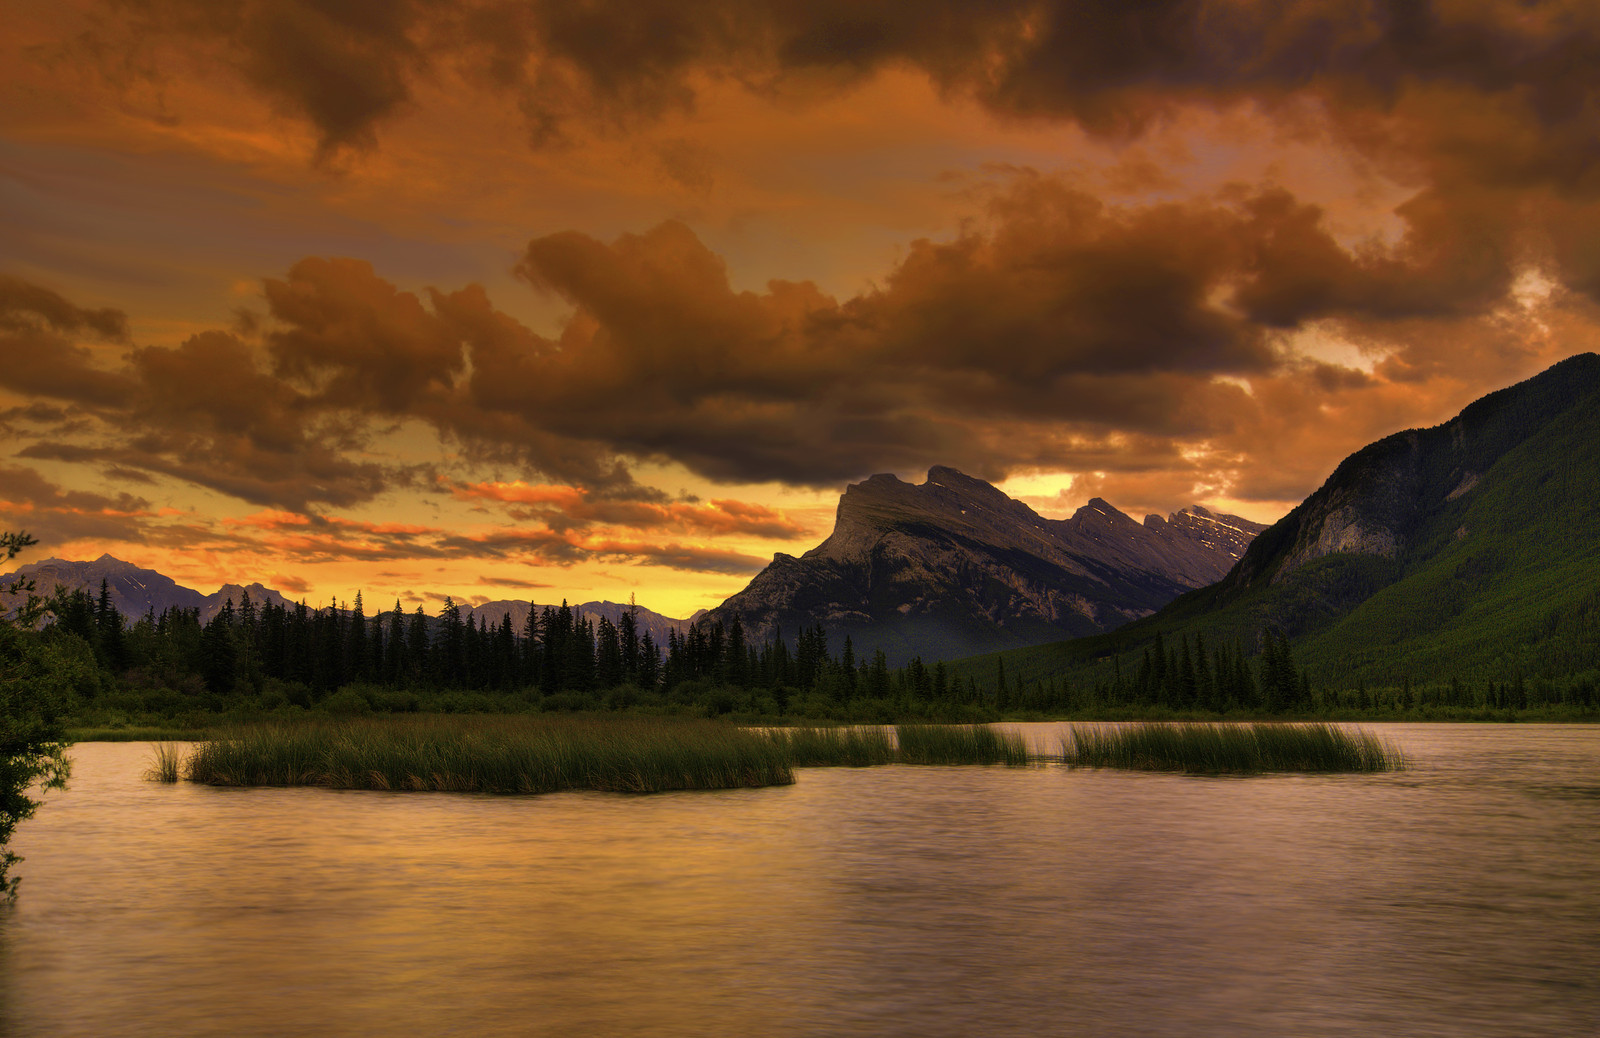 Sunset during a hiking tour in Banff